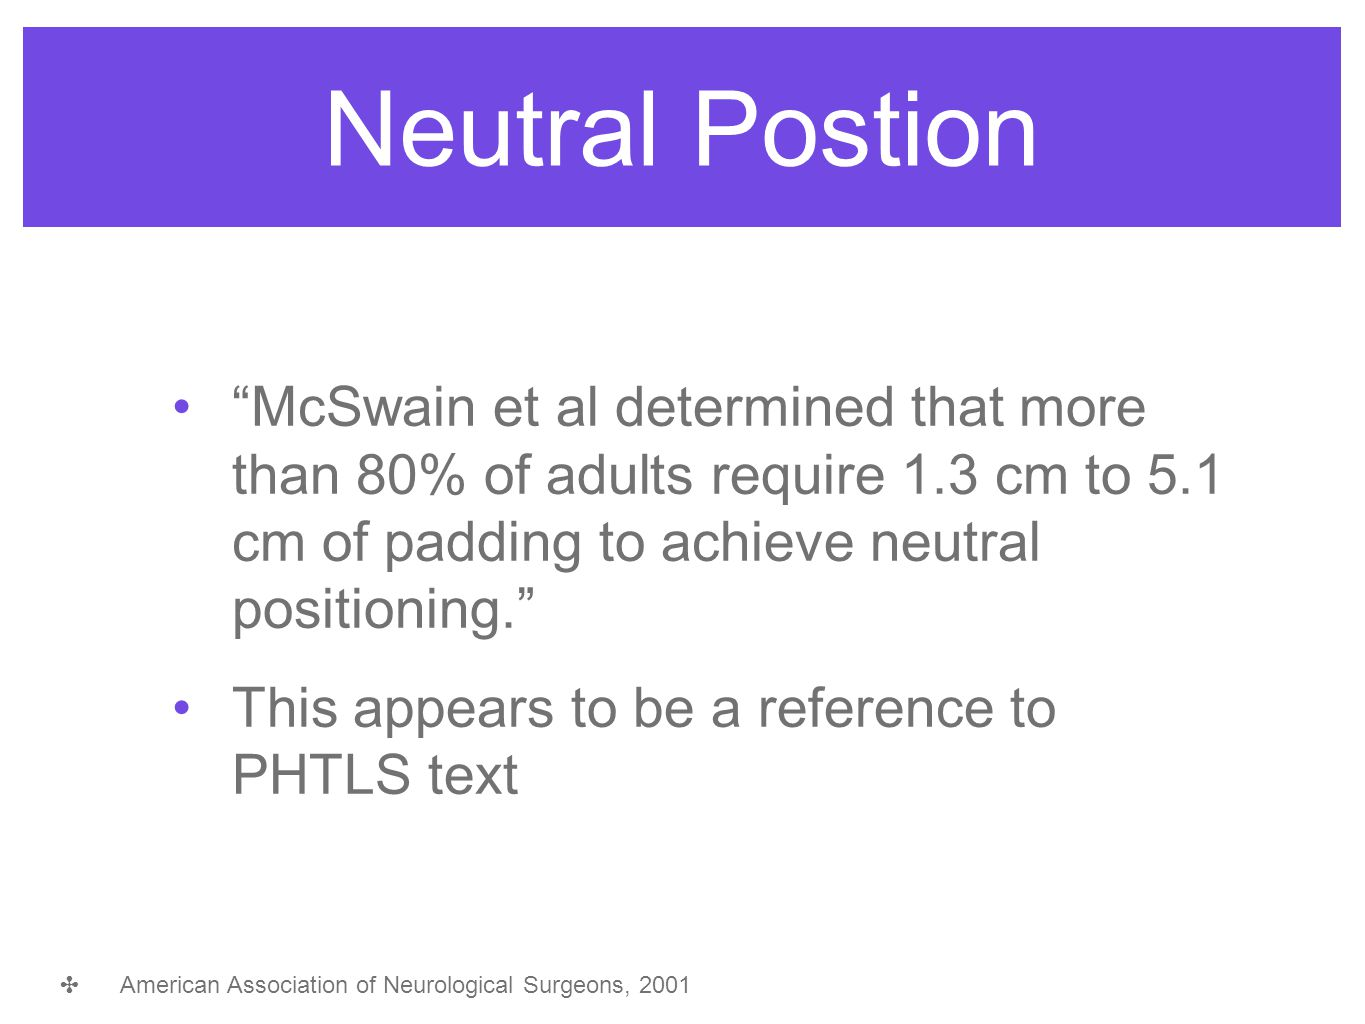 Neutral Postion McSwain et al determined that more than 80% of adults require 1.3 cm to 5.1 cm of padding to achieve neutral positioning.